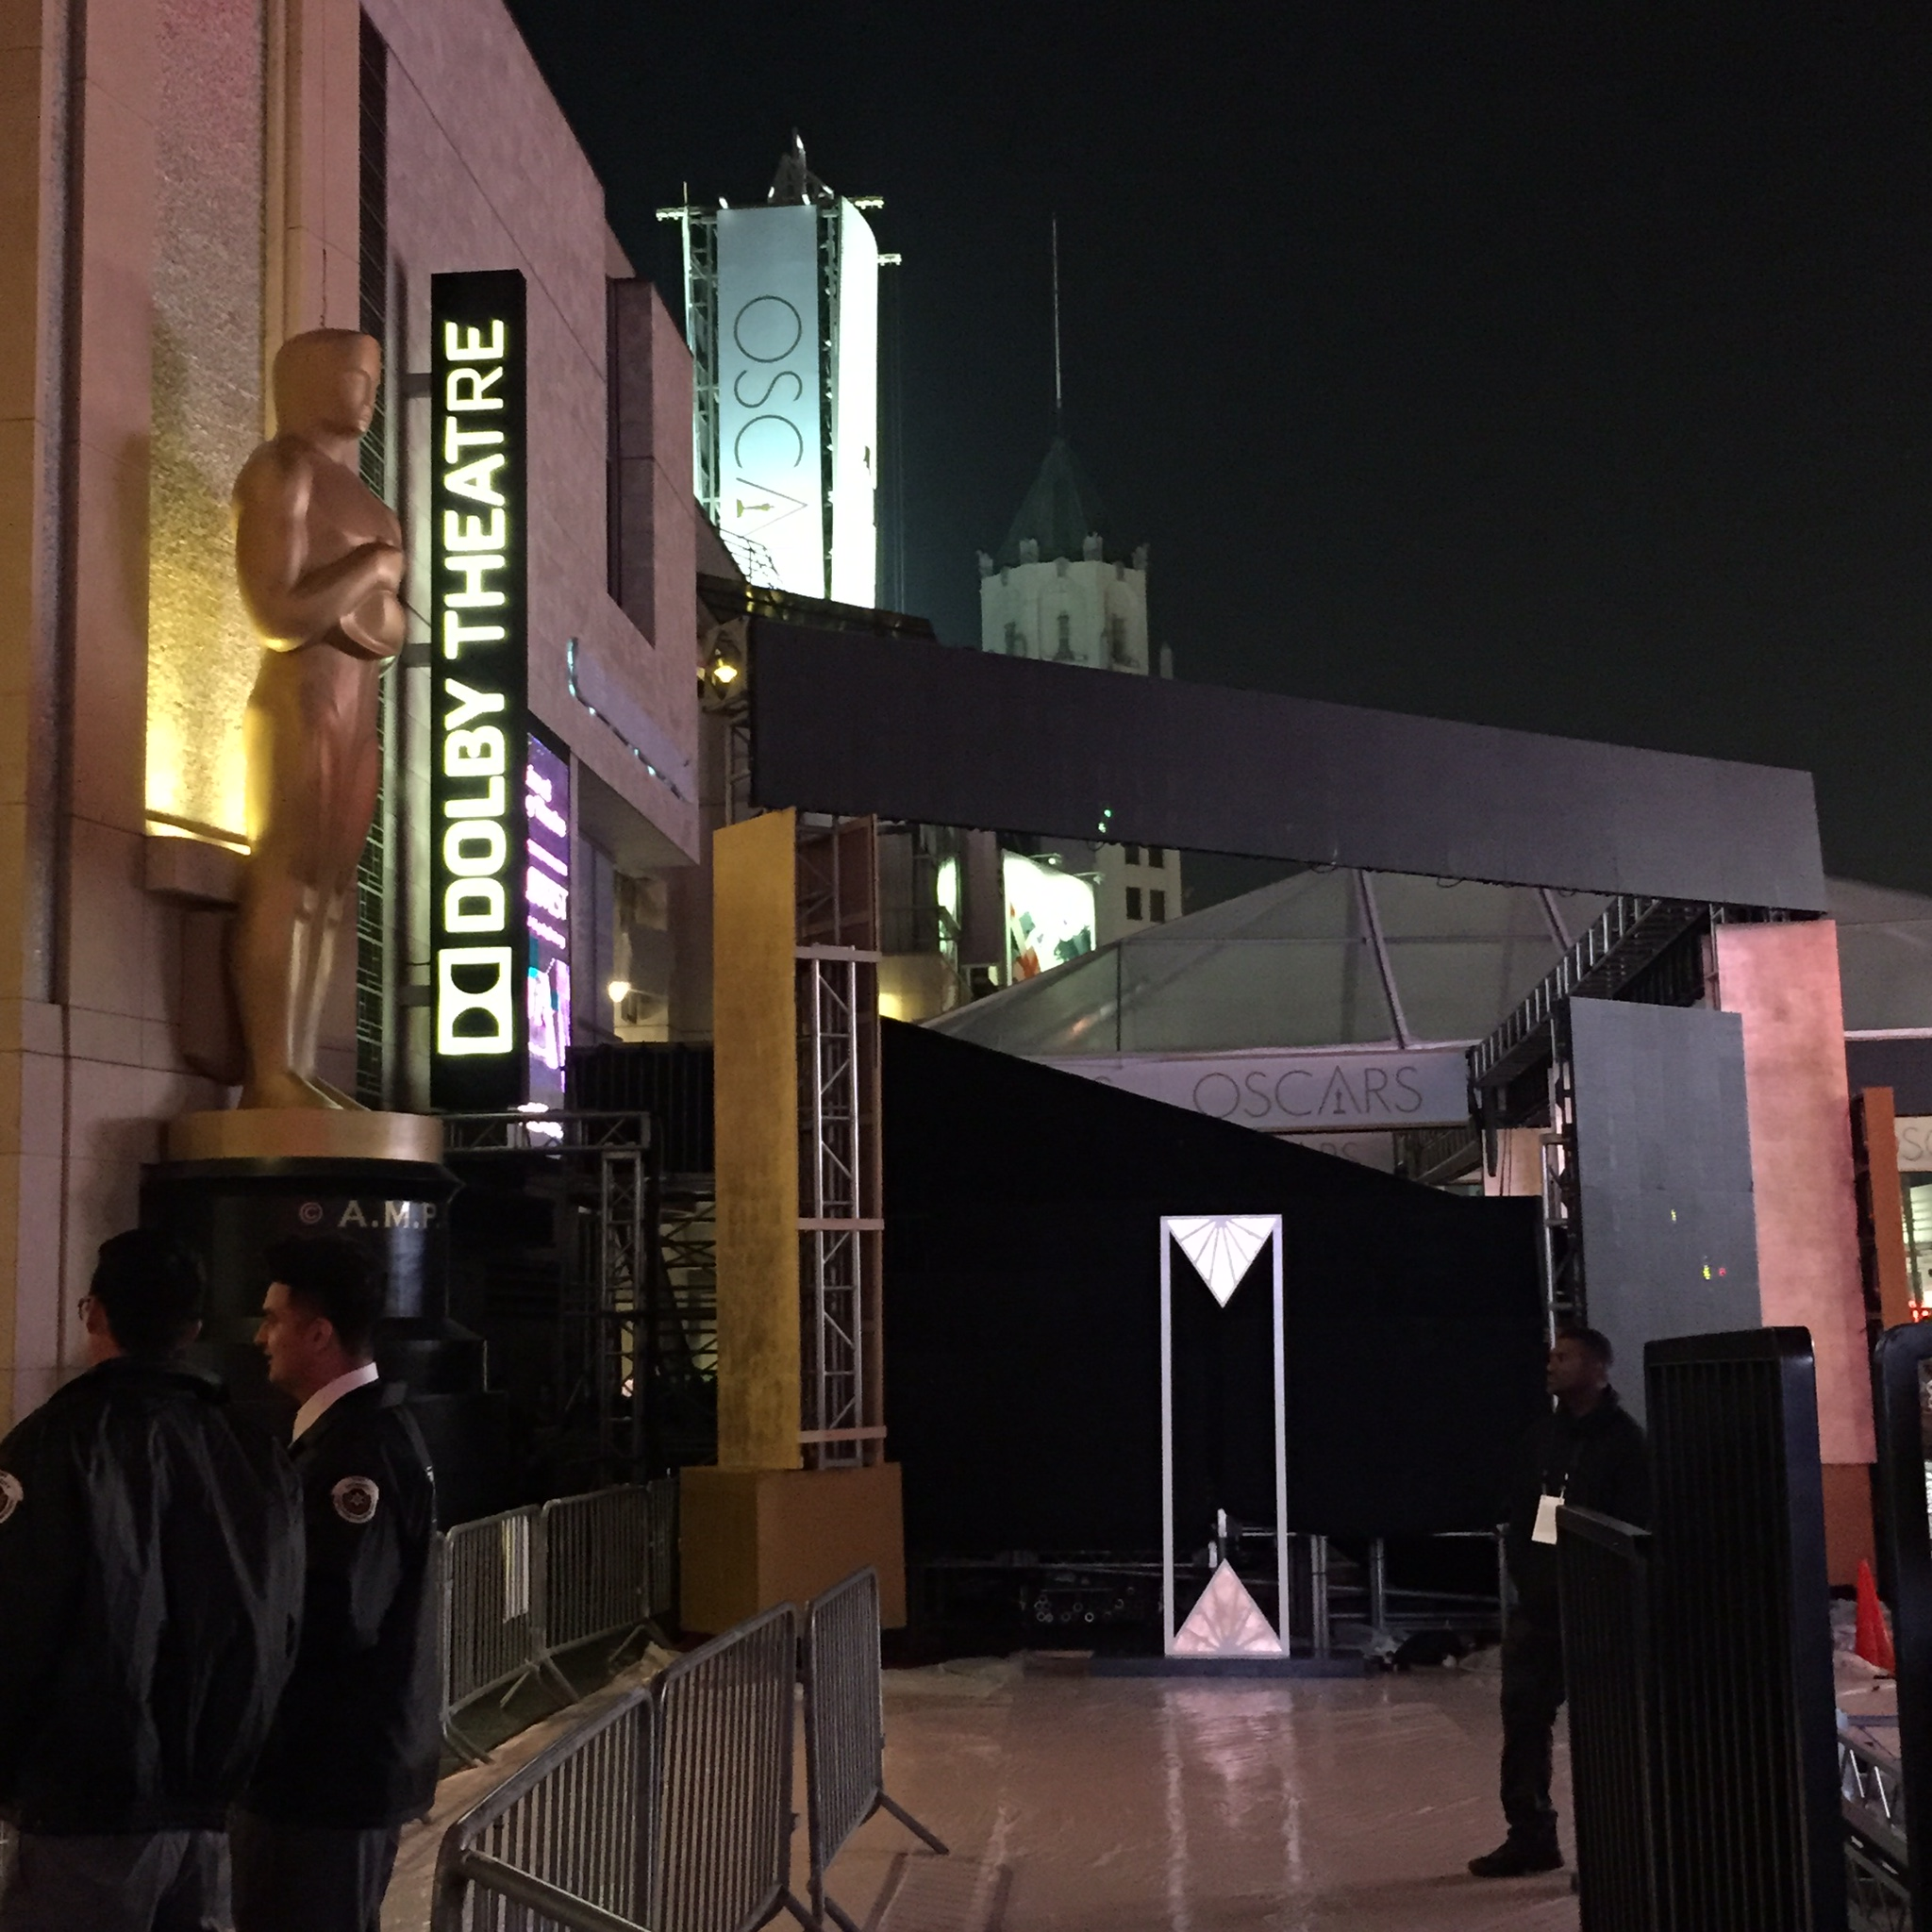 Oscars set up in progress at the Dolby Theater.